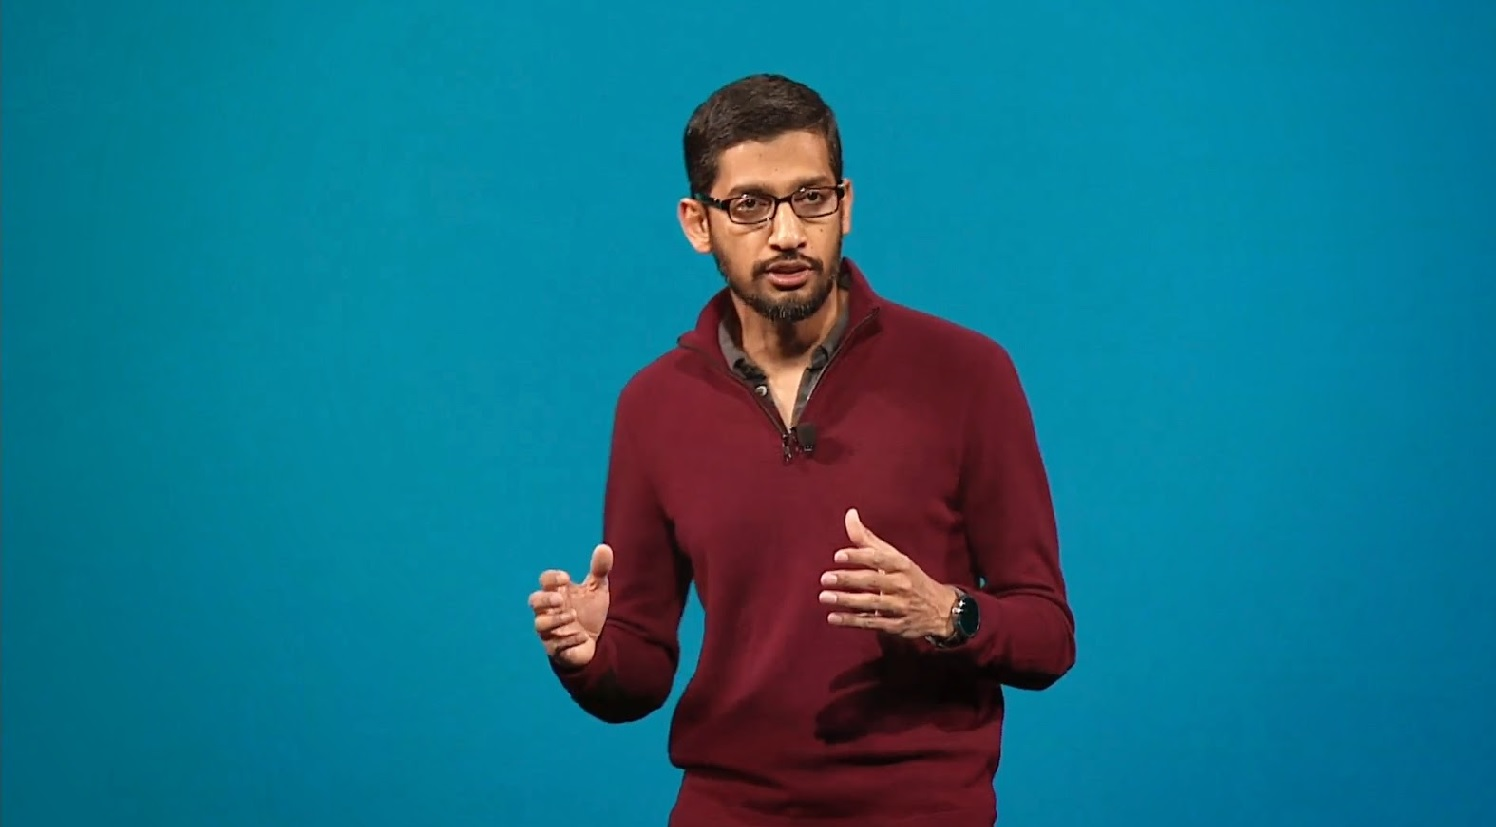 Businessman Quotes Wallpaper Sundar Pichai Net Worth Wisetoast